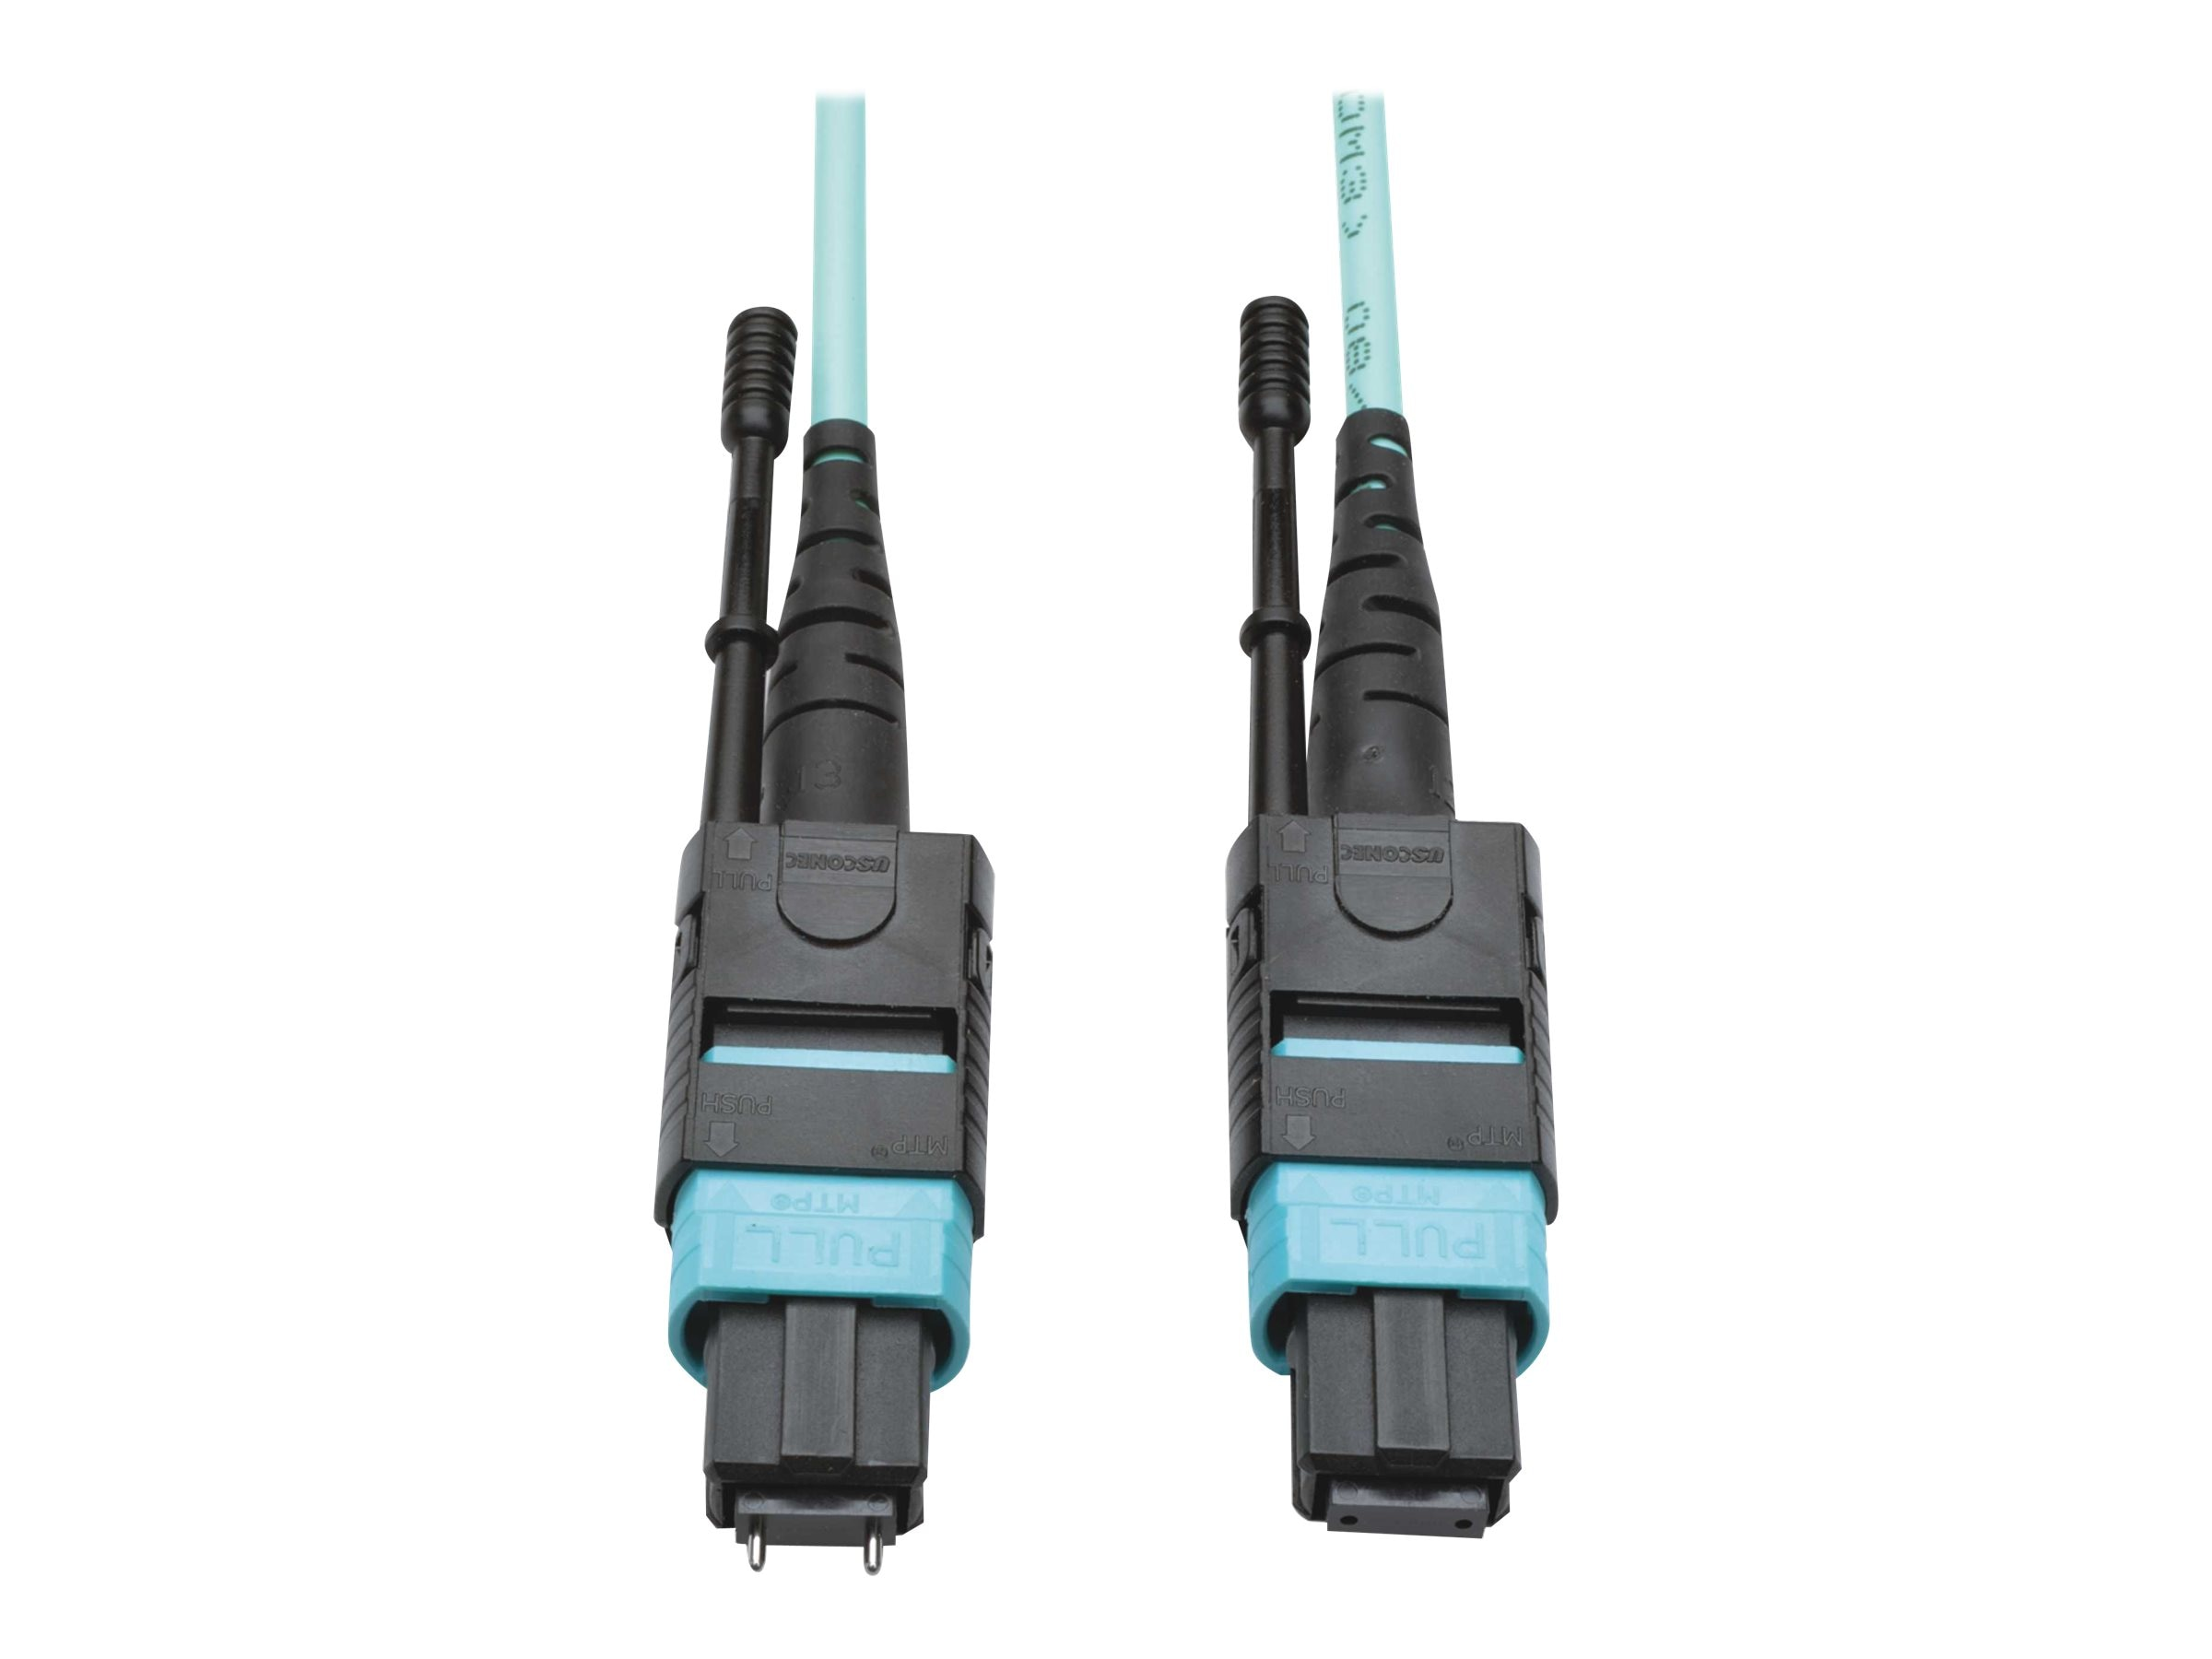 Tripp Lite MTP MPO M F 50 125 OM3 Multimode Patch Cable, Aqua, 5m, N842-05M-12-MF, 30785187, Cables